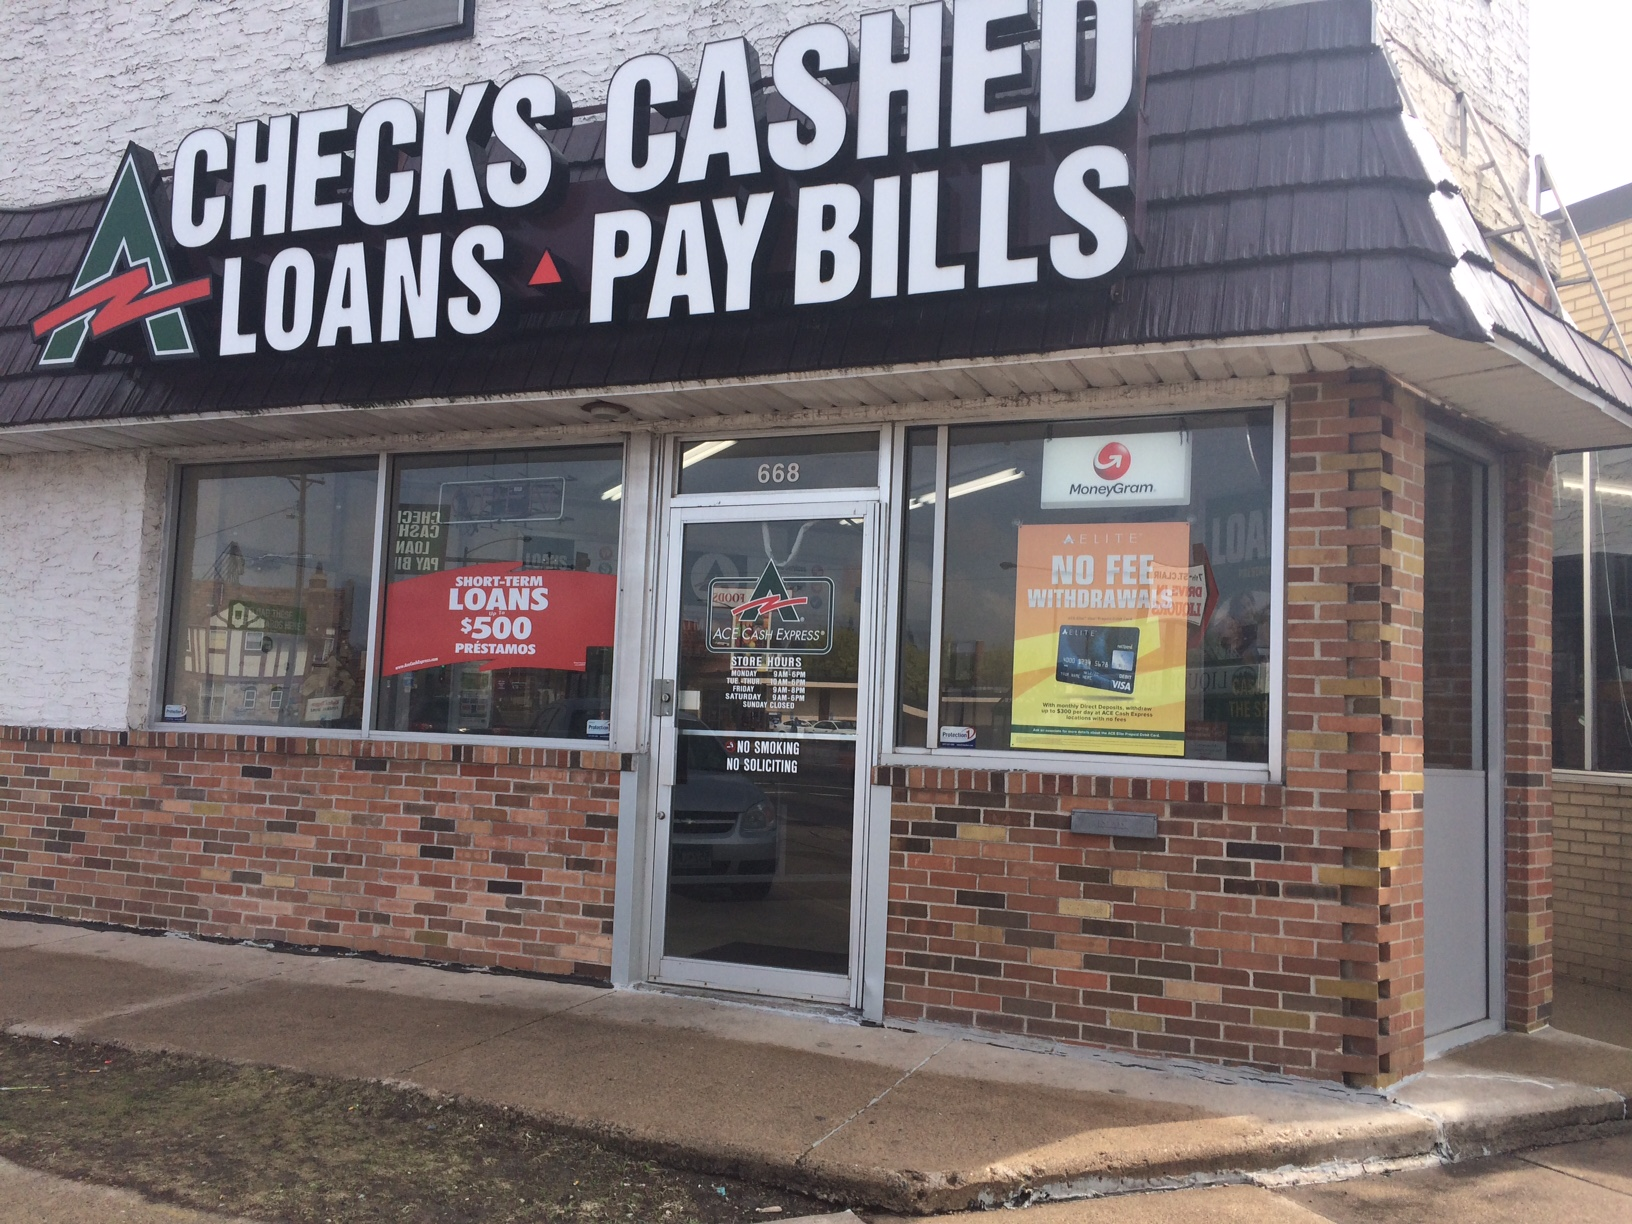 Payday loans up to 500 picture 7